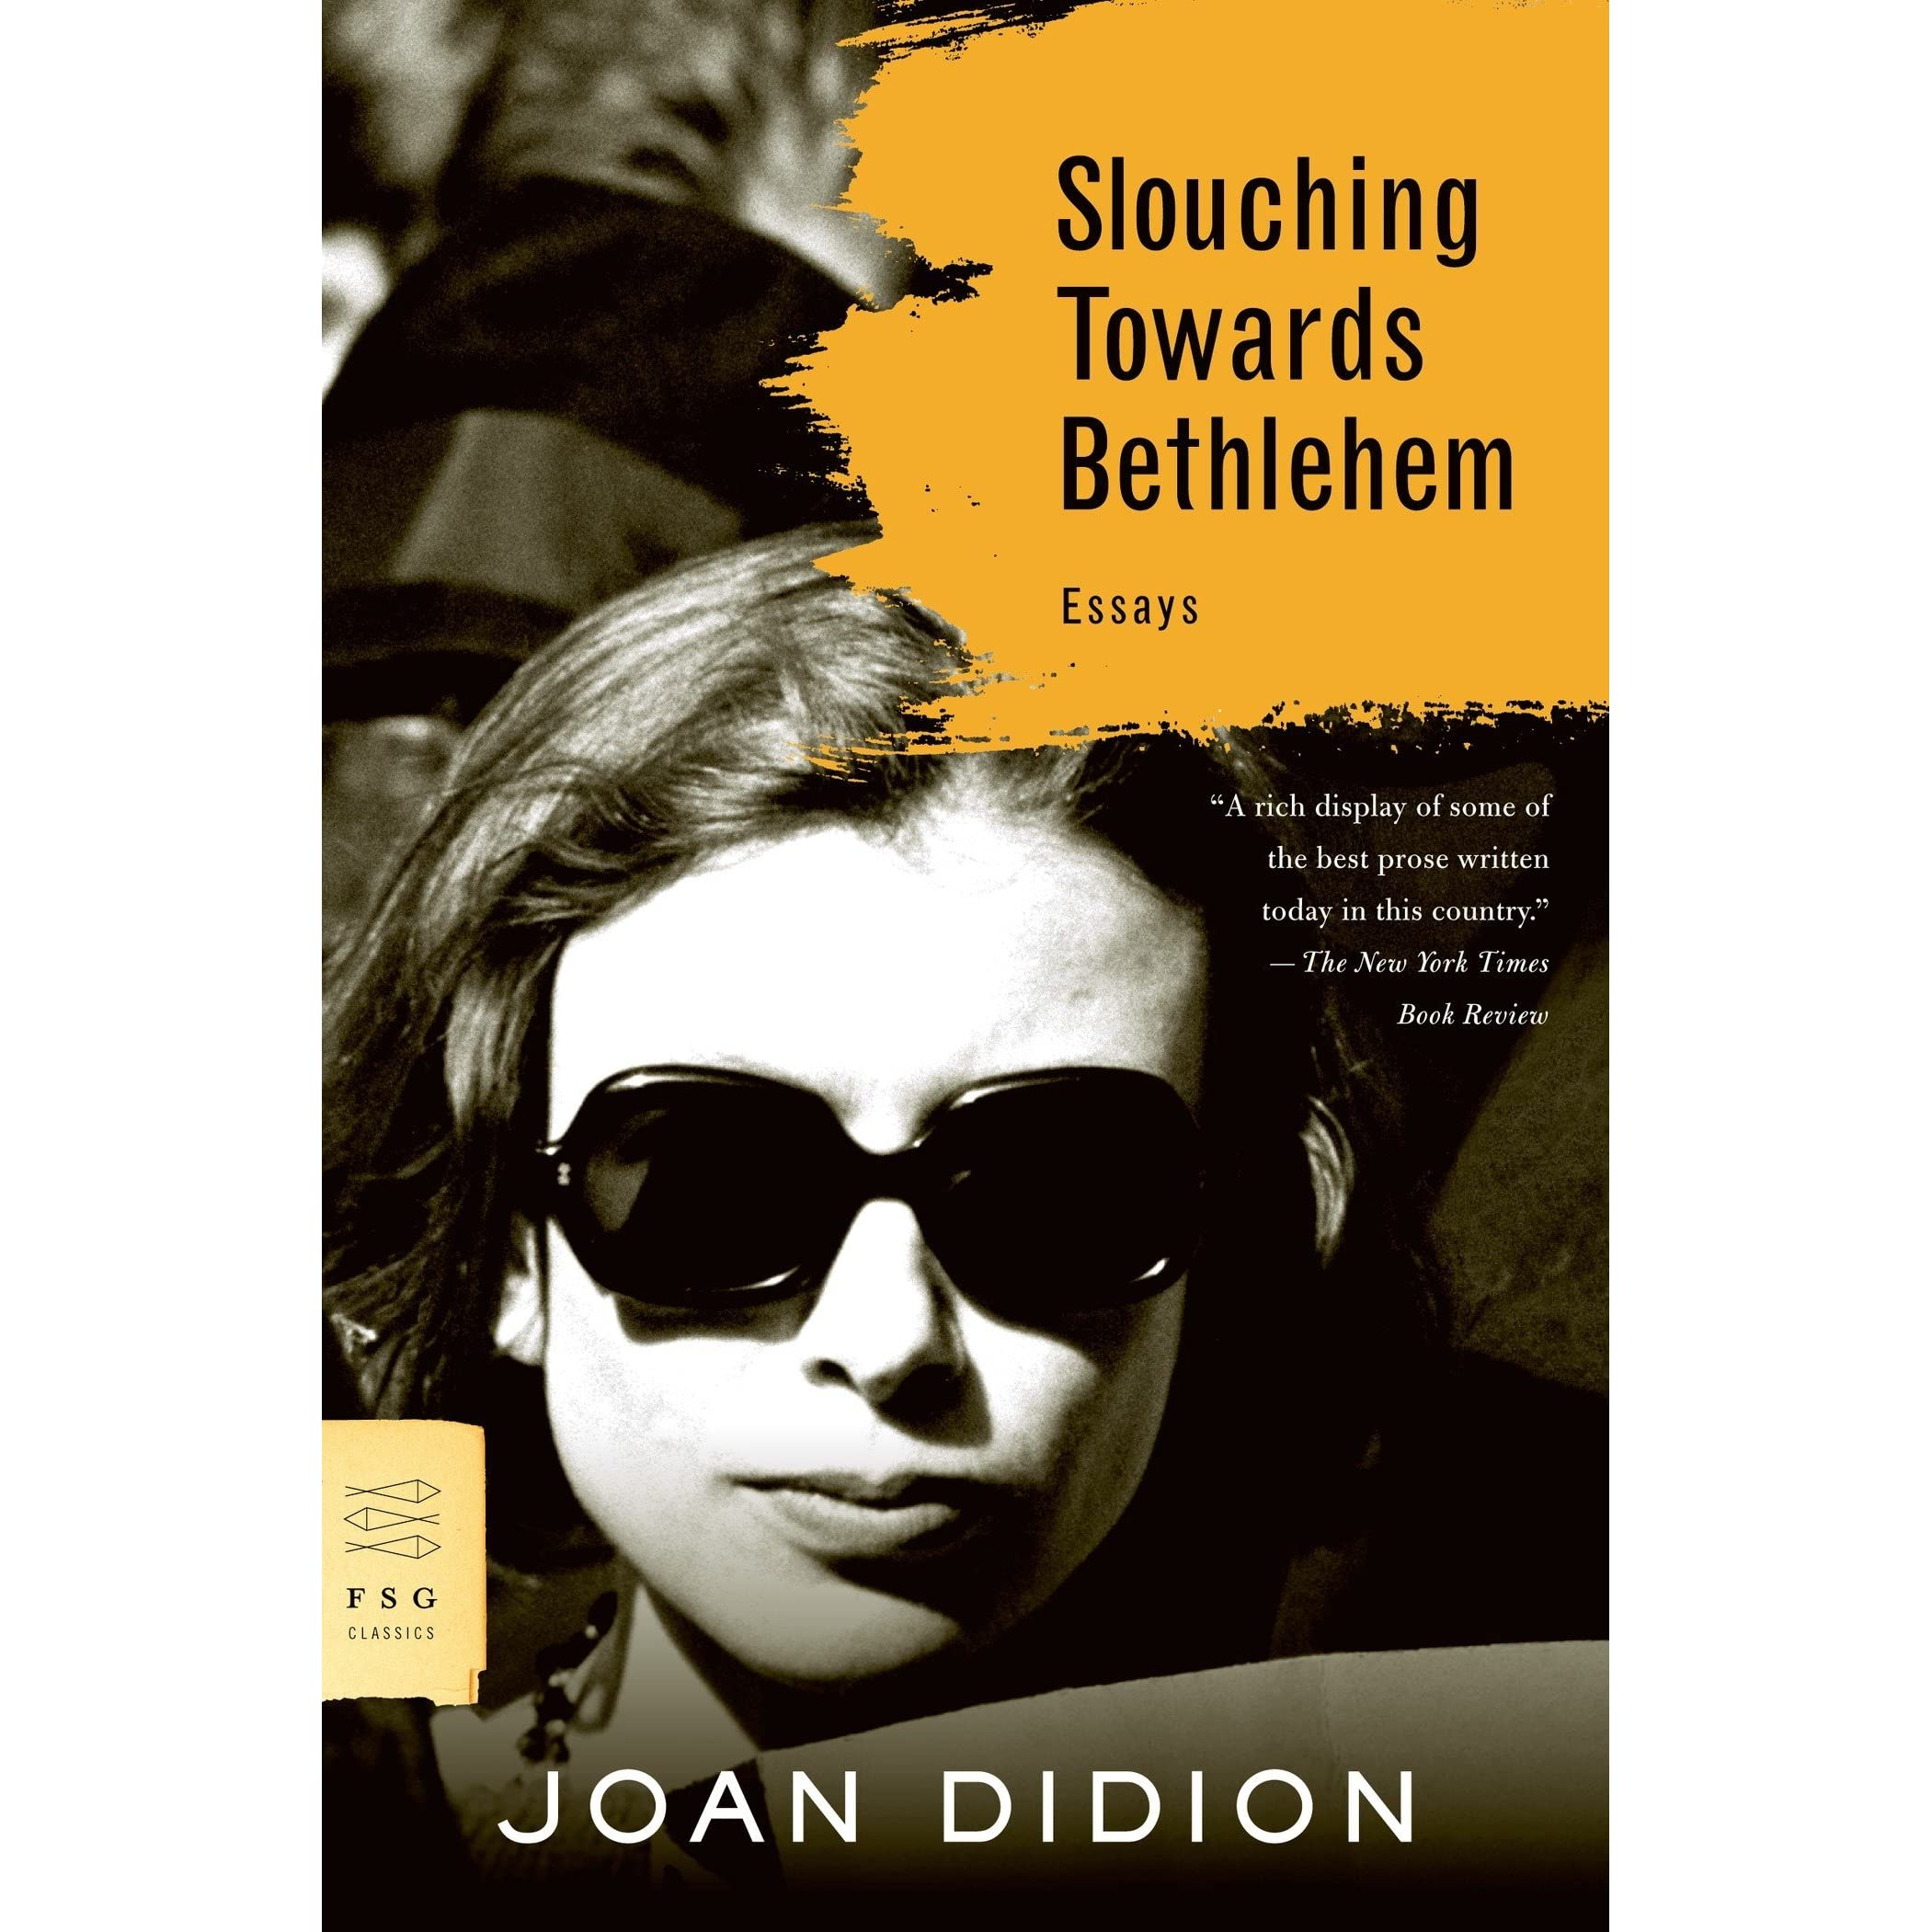 bethlehem essay slouching towards  · slouching towards bethlehem is a collection of essays by joan didion, all based on the theme of things coming undone she looks at this theme from a.